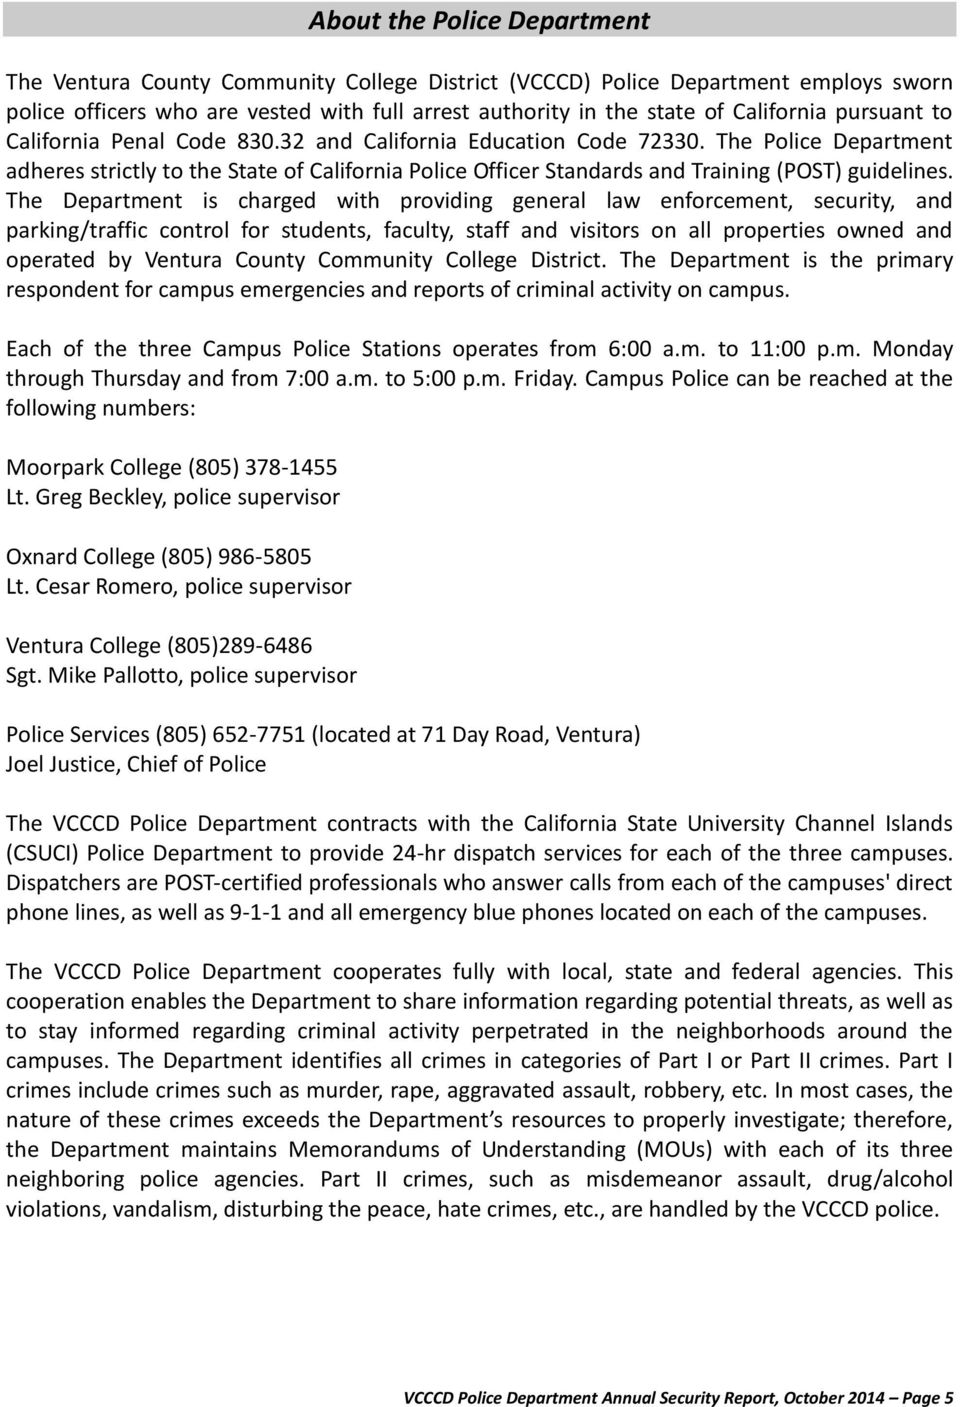 The Department is charged with providing general law enforcement, security, and parking/traffic control for students, faculty, staff and visitors on all properties owned and operated by Ventura